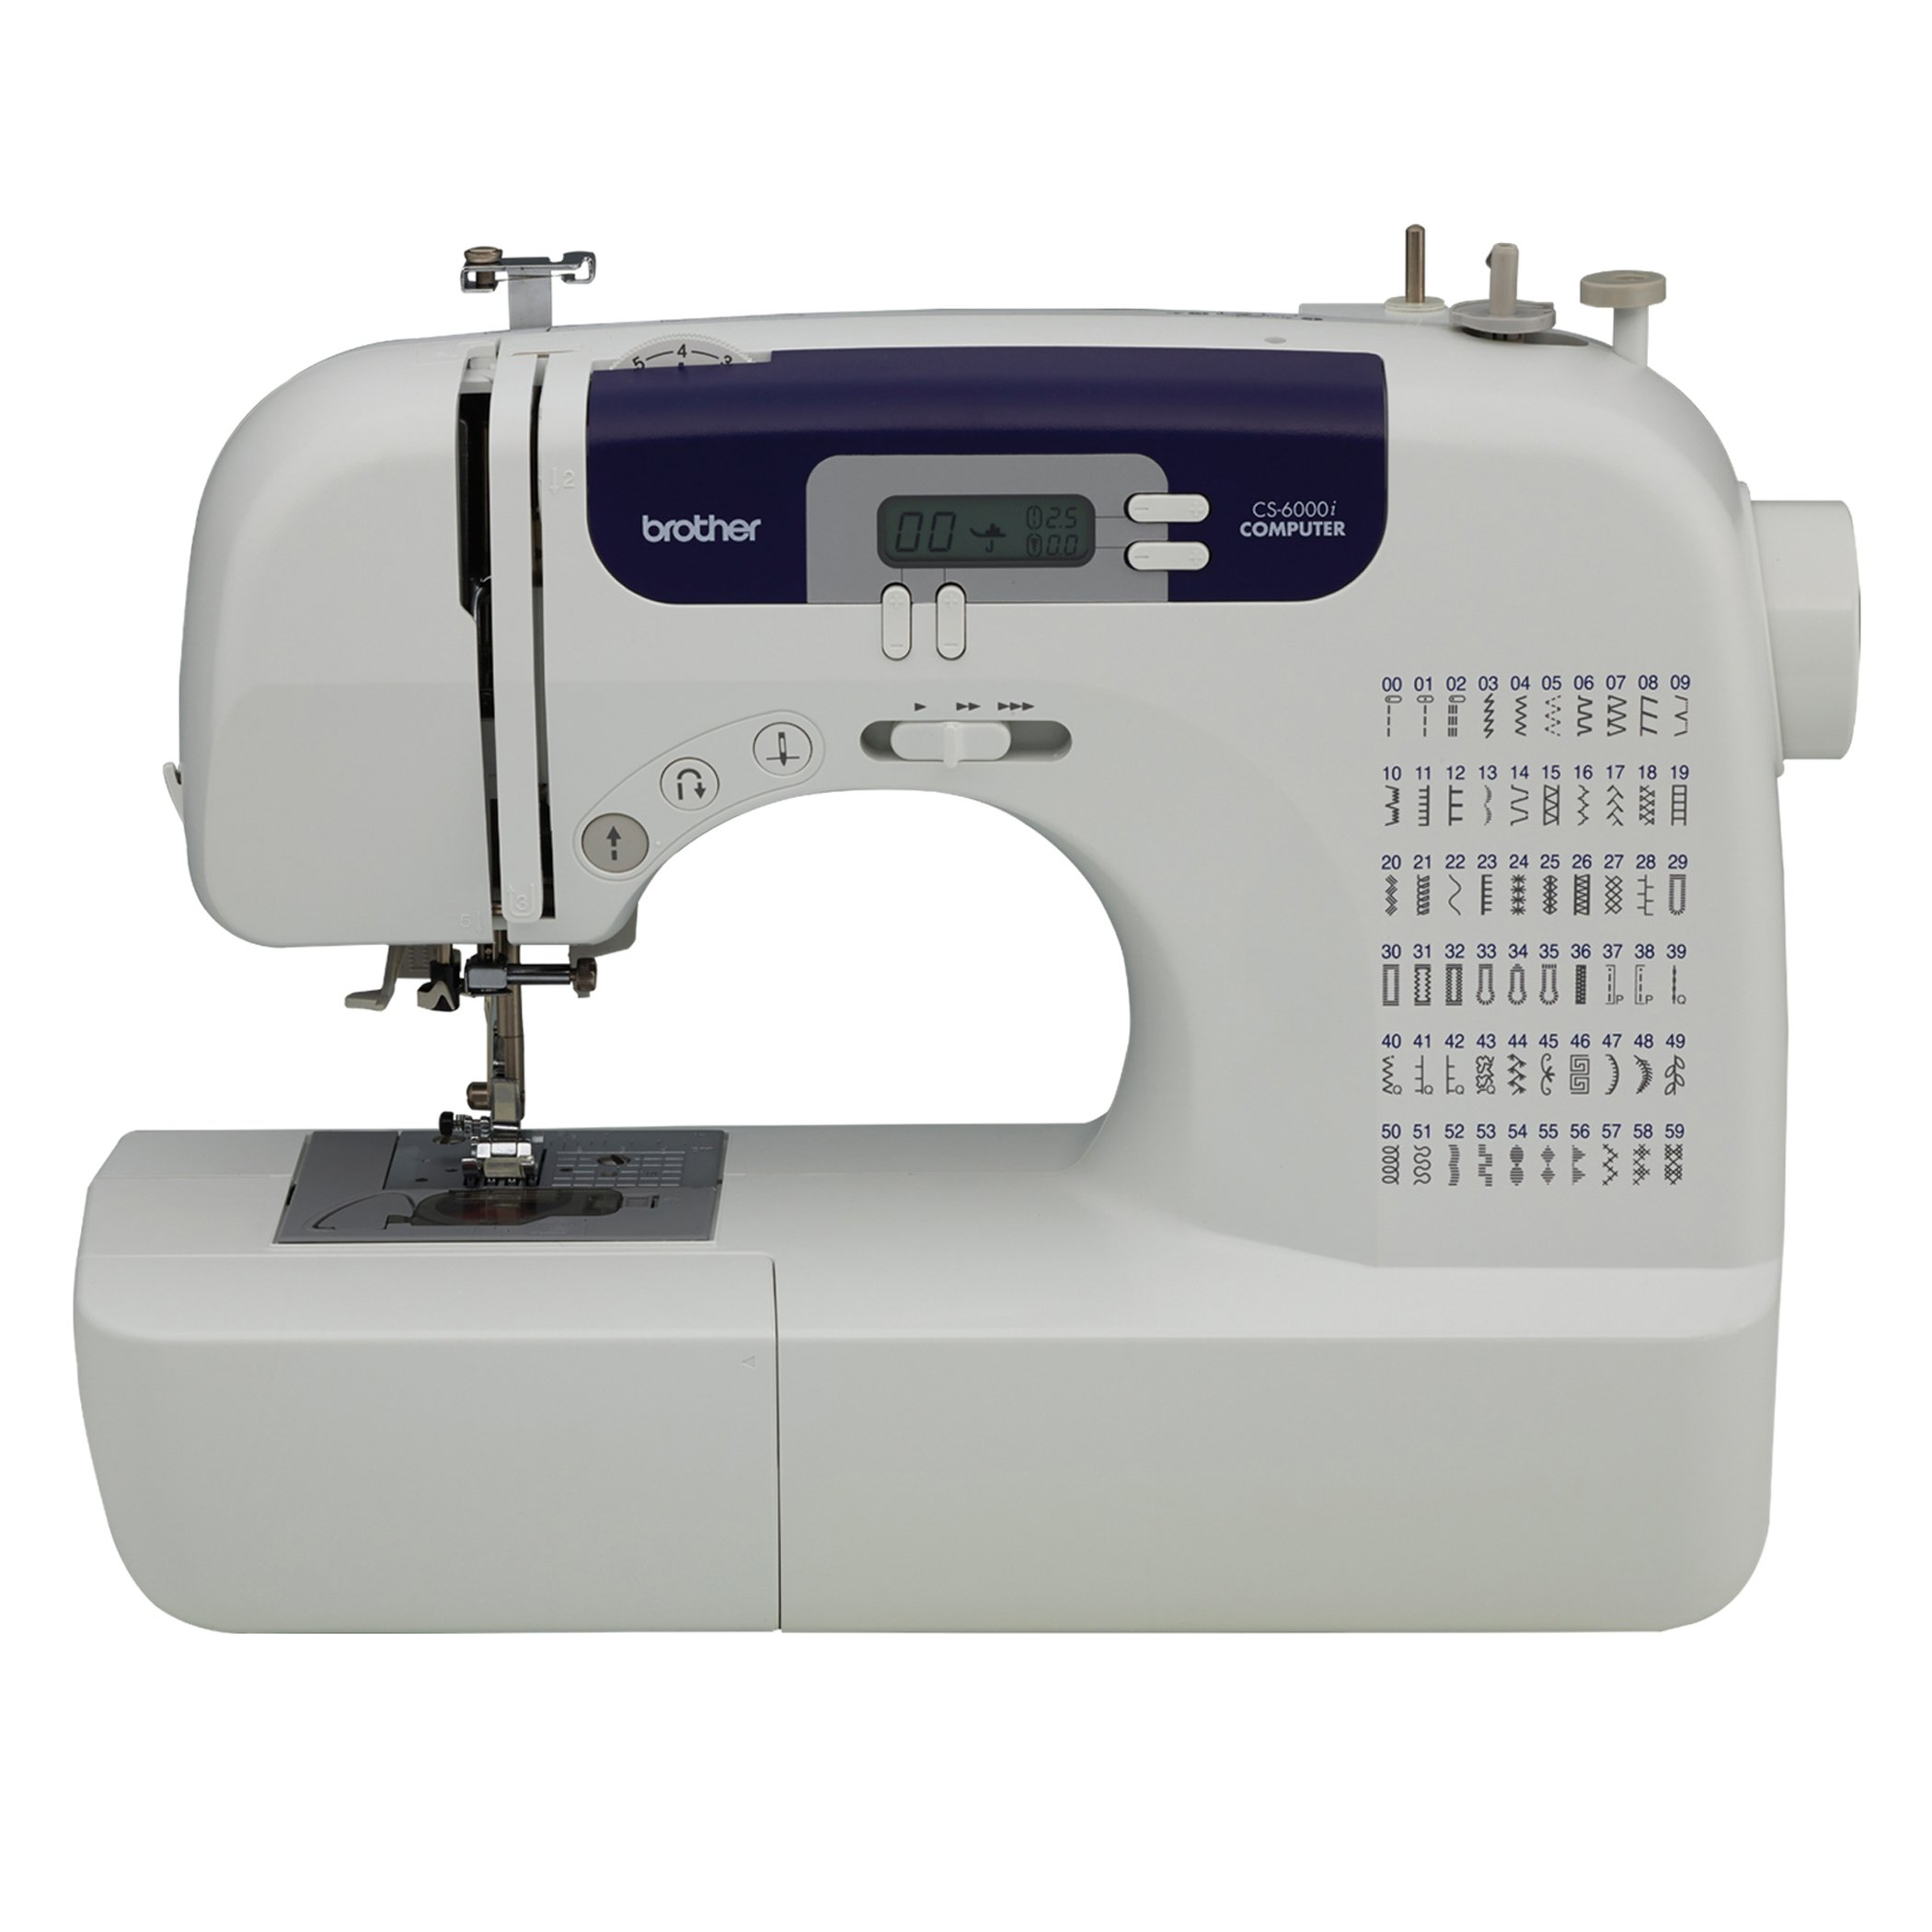 Best Rated In Sewing Machines Helpful Customer Reviews Singer 99 K Machine Threading Diagram Brother Cs6000i Feature Rich With 60 Built Stitches 7 Styles